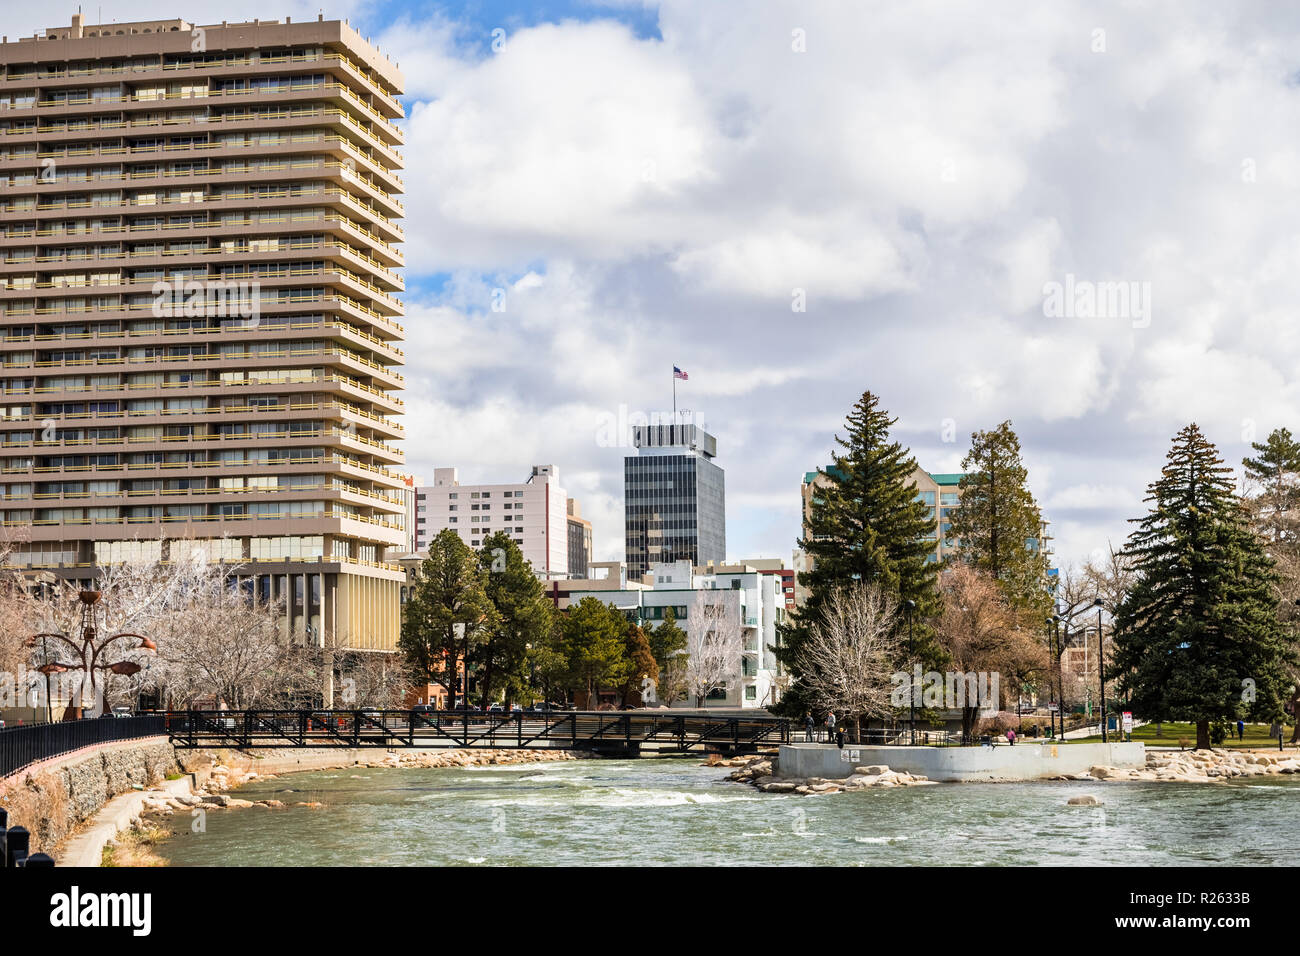 Reno, Nevada skyline as seen from the shoreline of Truckee river flowing through downtown; - Stock Image